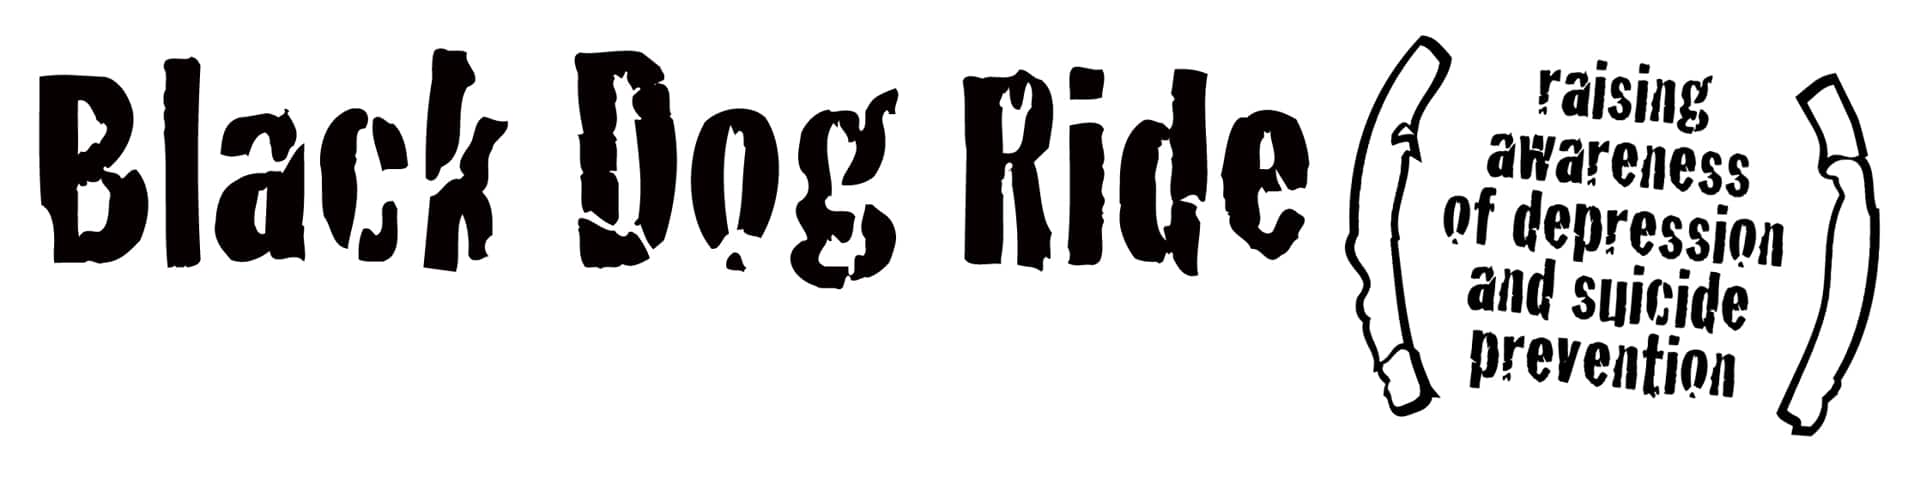 Black Dog Ride logo